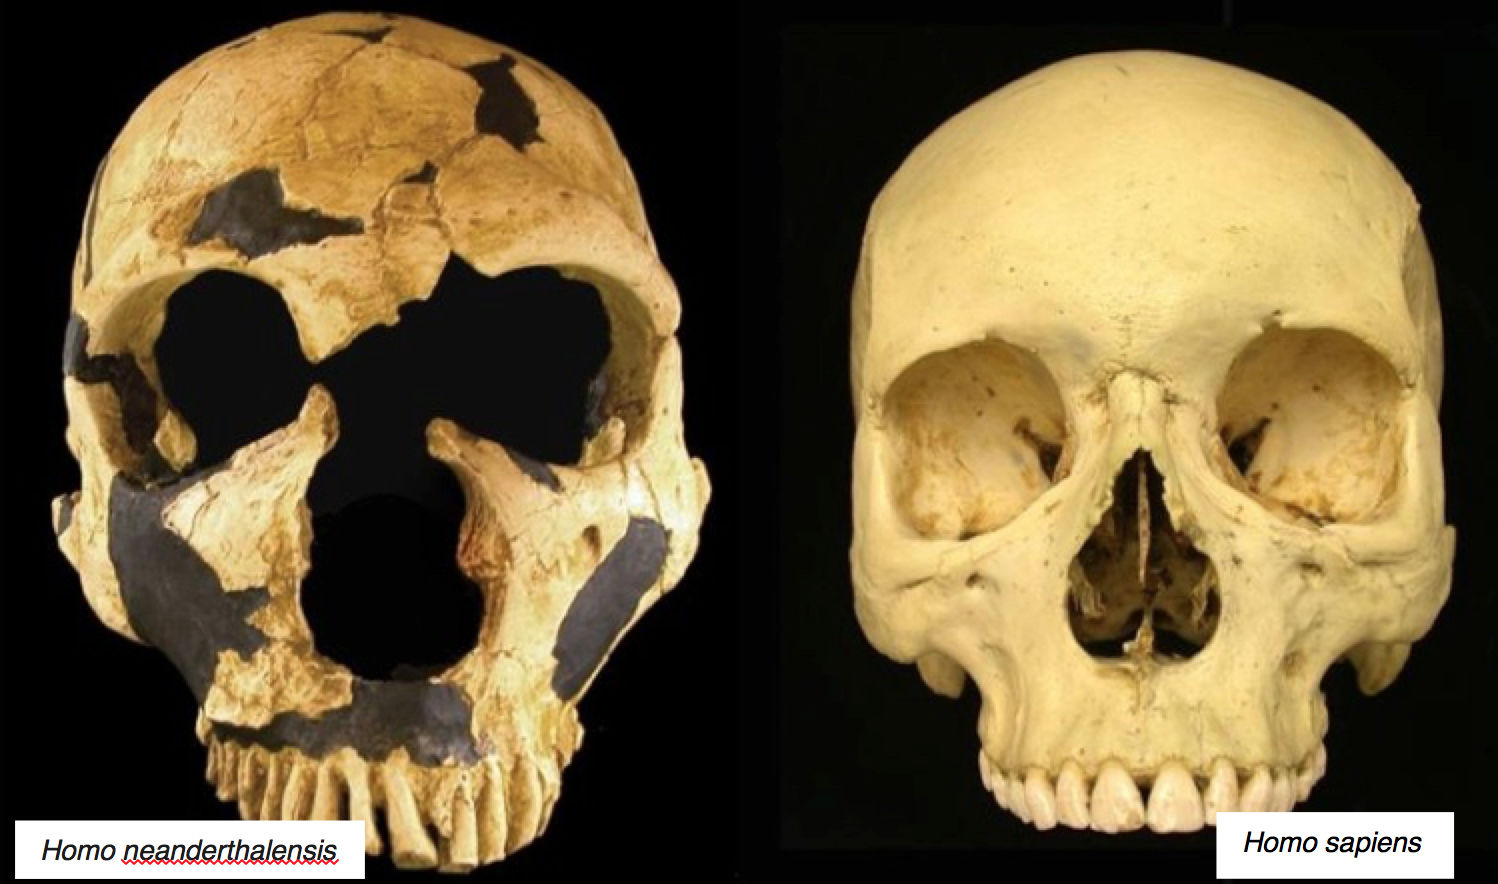 Figure 1. Comparison of a Neanderthal skull (left) with that of a Homo sapiens (Credit: Nathan Holton). Photo credit: https://www.newscientist.com/article/dn15042-why-did-neanderthals-have-such-big-noses/